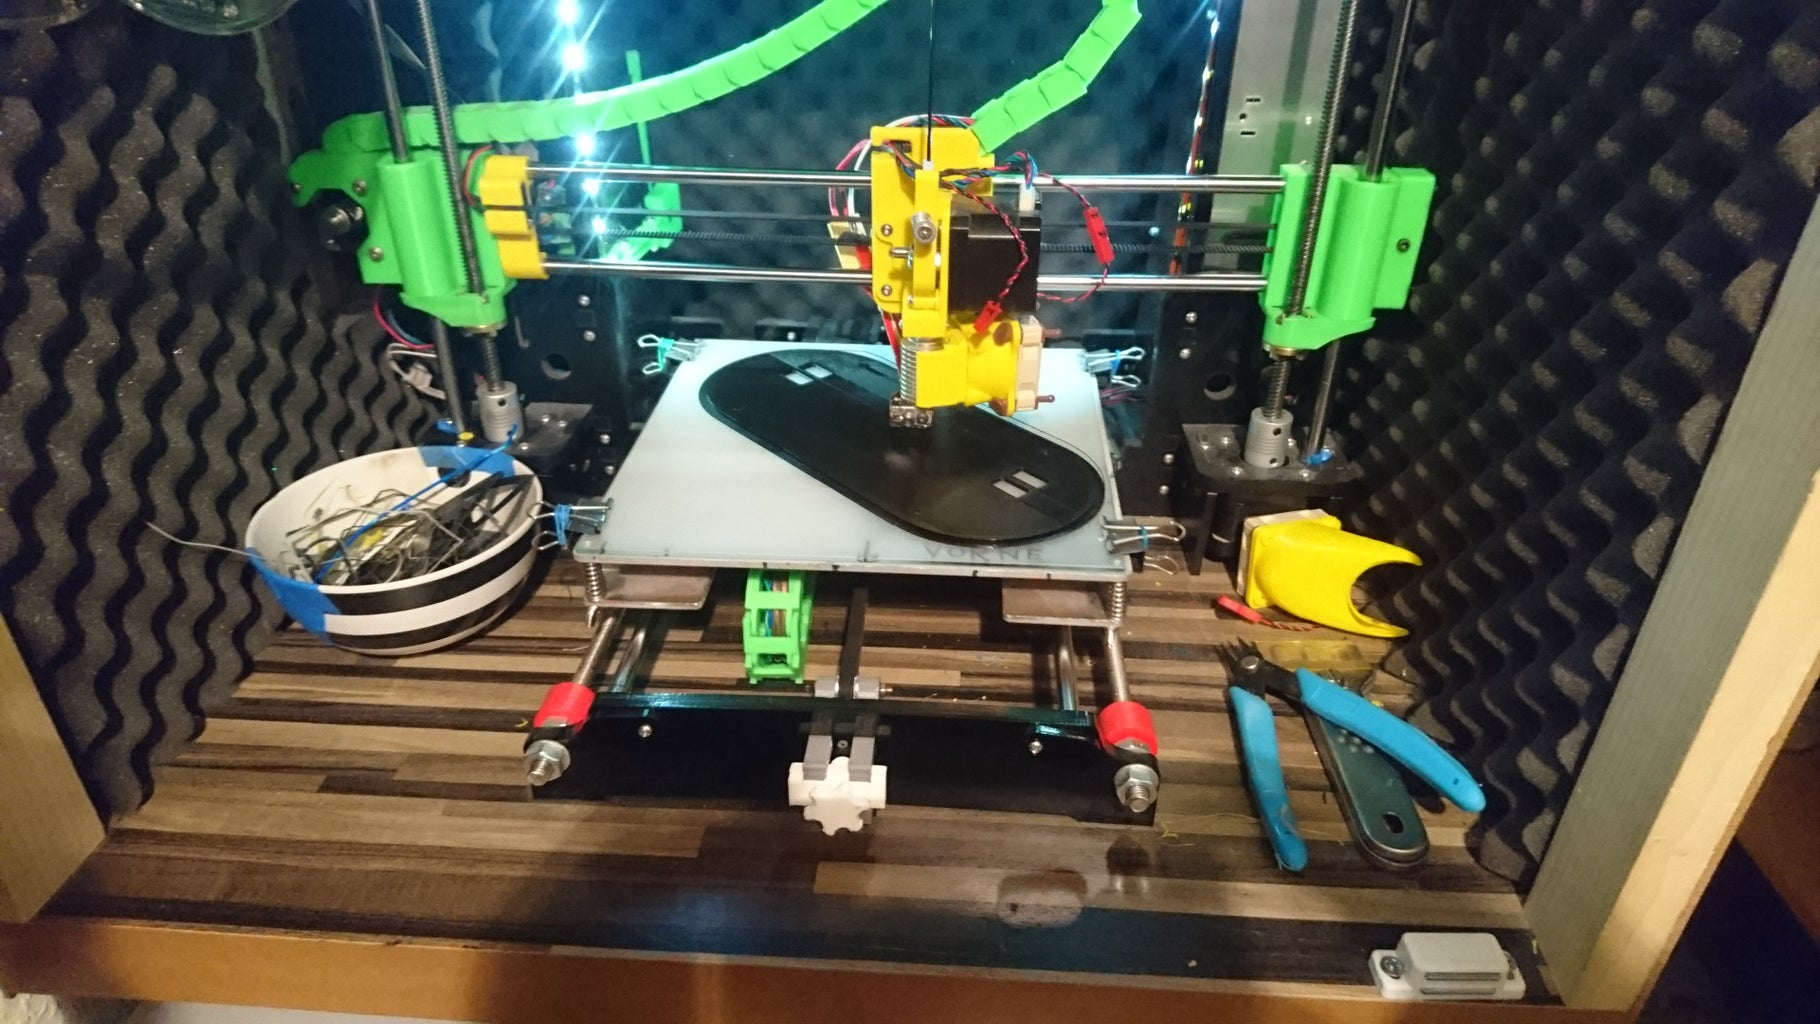 3D Printing the Case